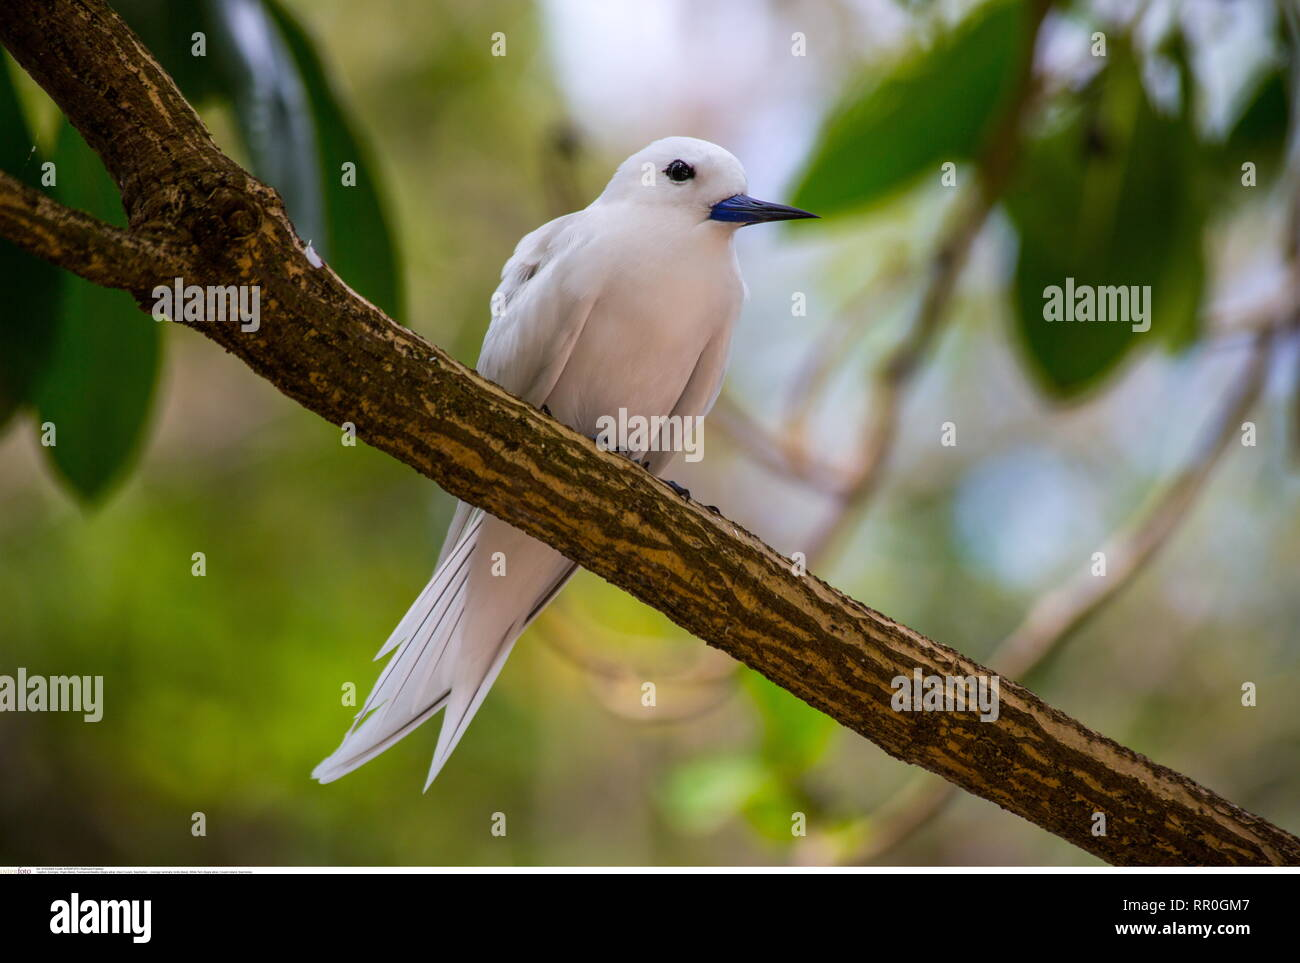 Zoologia / animali, uccelli (Aves), Bianco (Tern Gygis alba), Isola di Cousin, Seychelles, Additional-Rights-Clearance-Info-Not-Available Immagini Stock